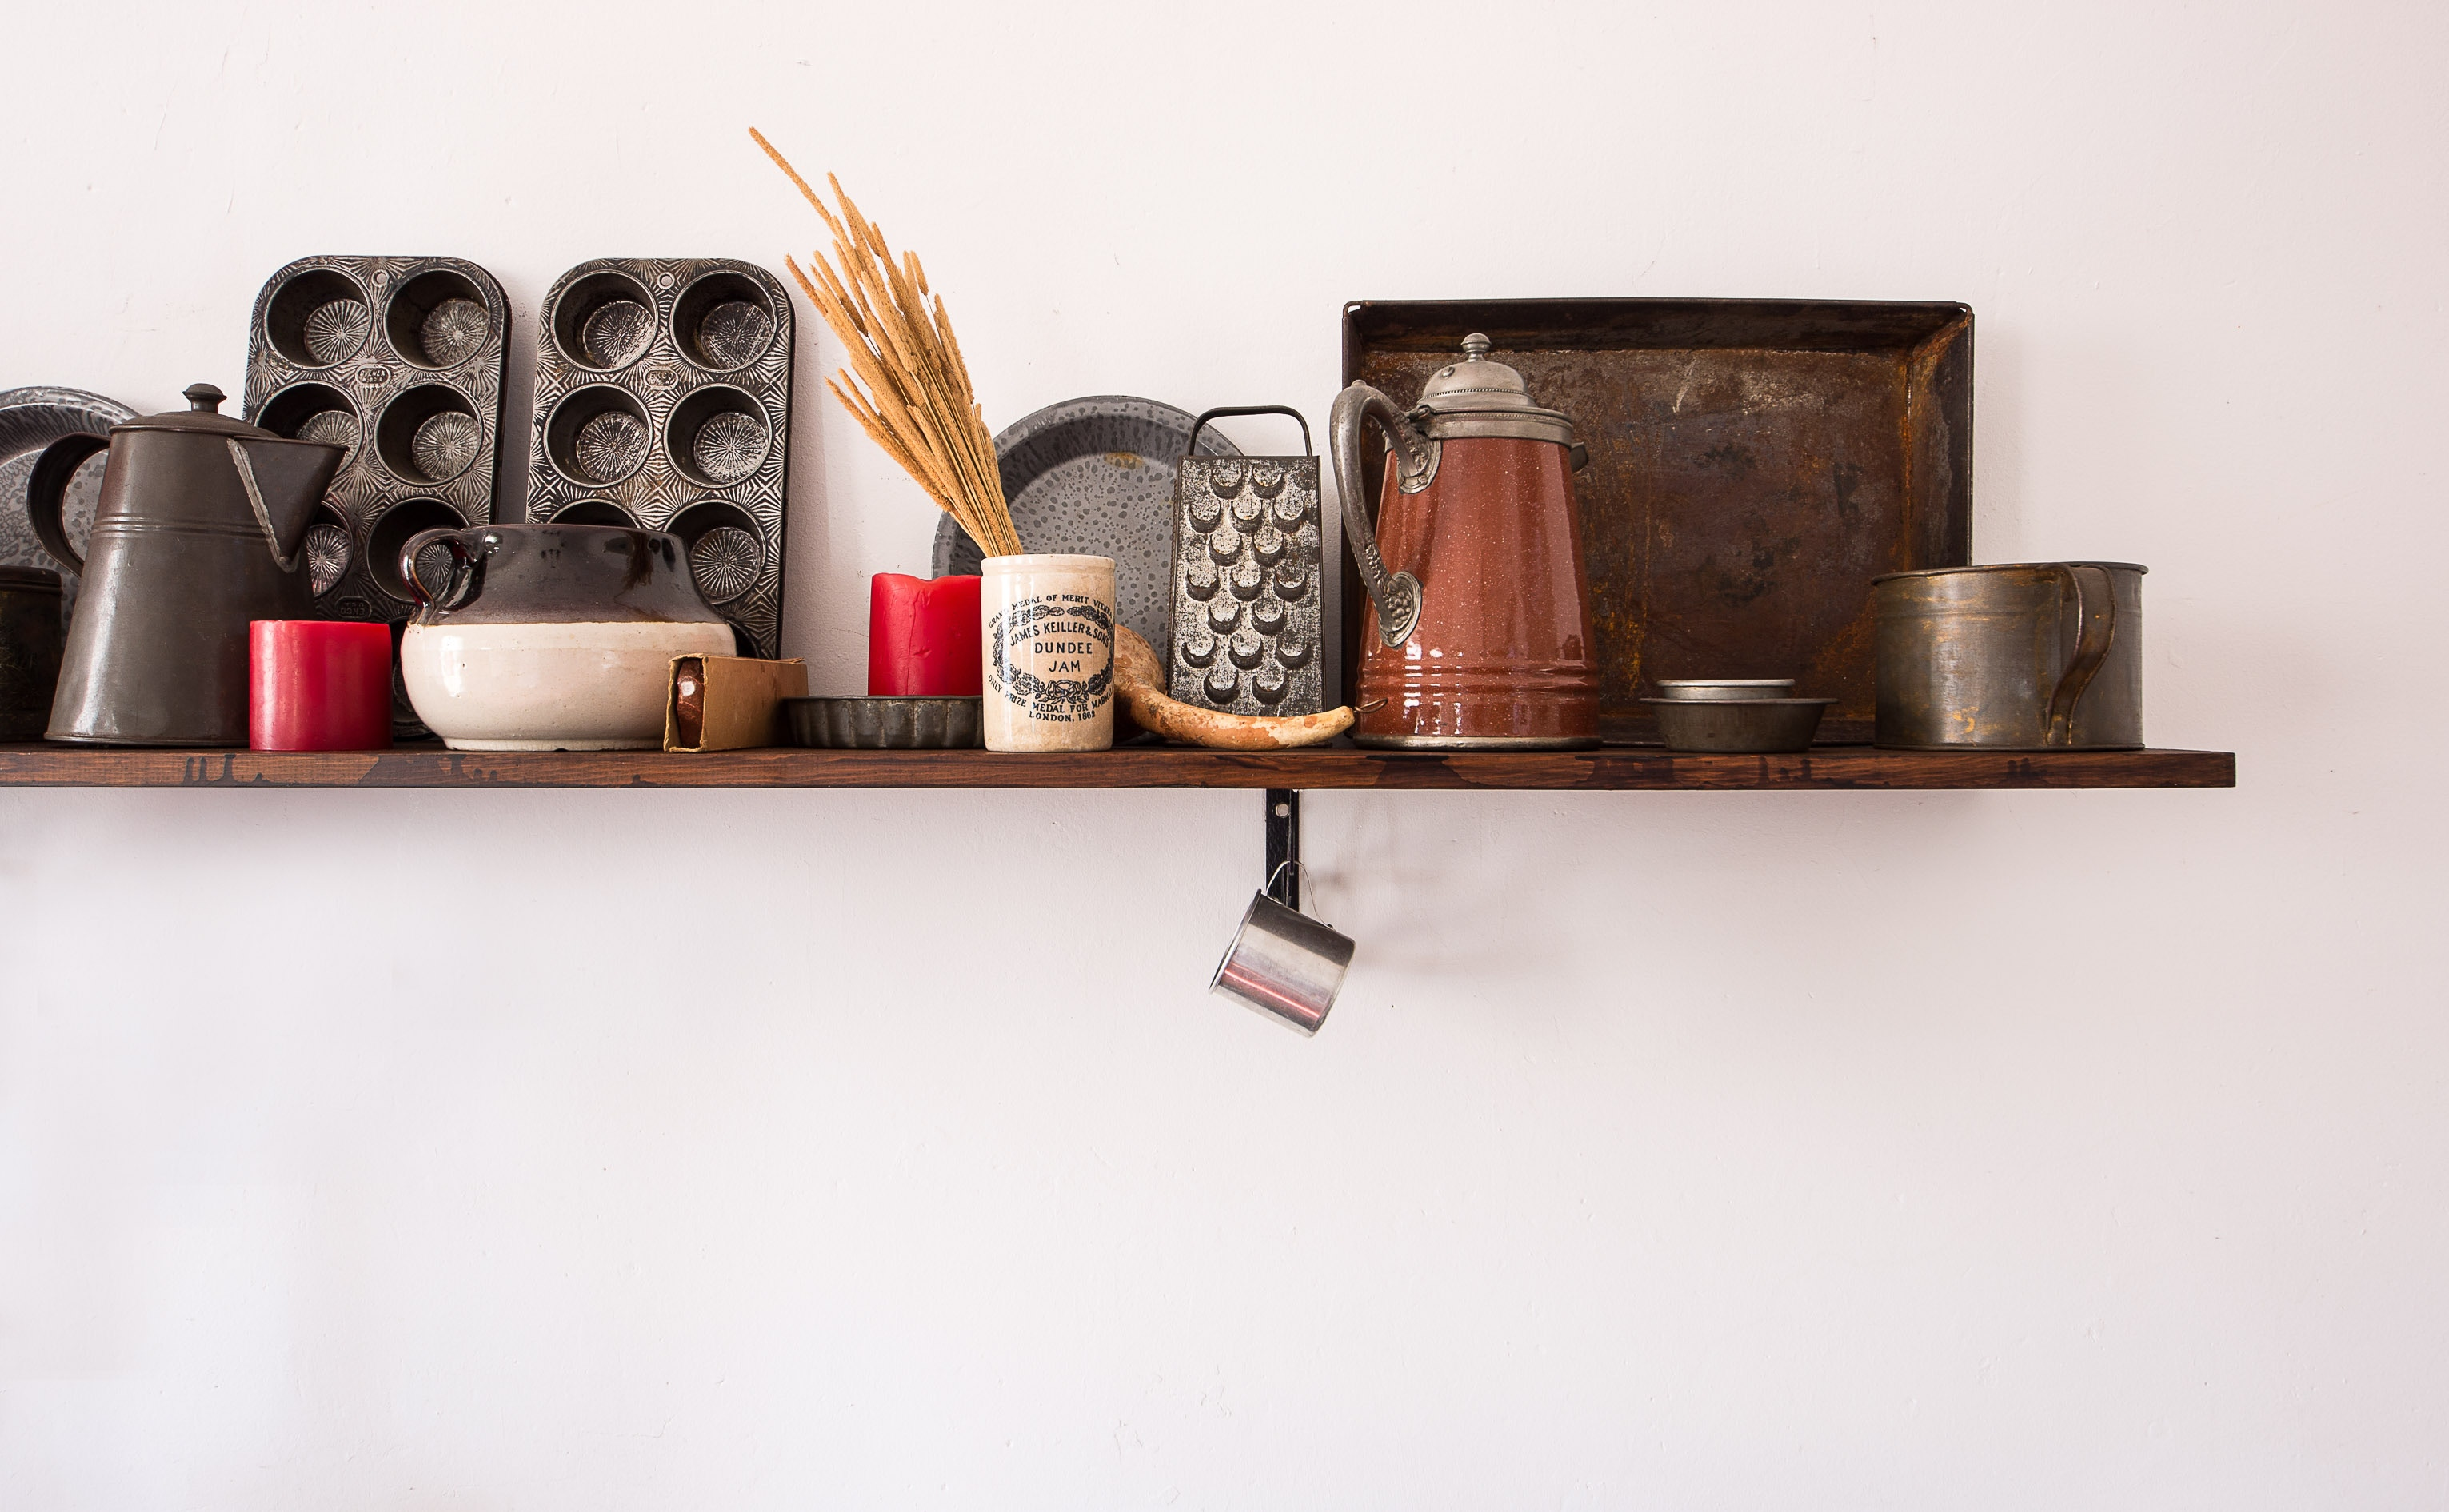 12 Items You Need For Your First Kitchen